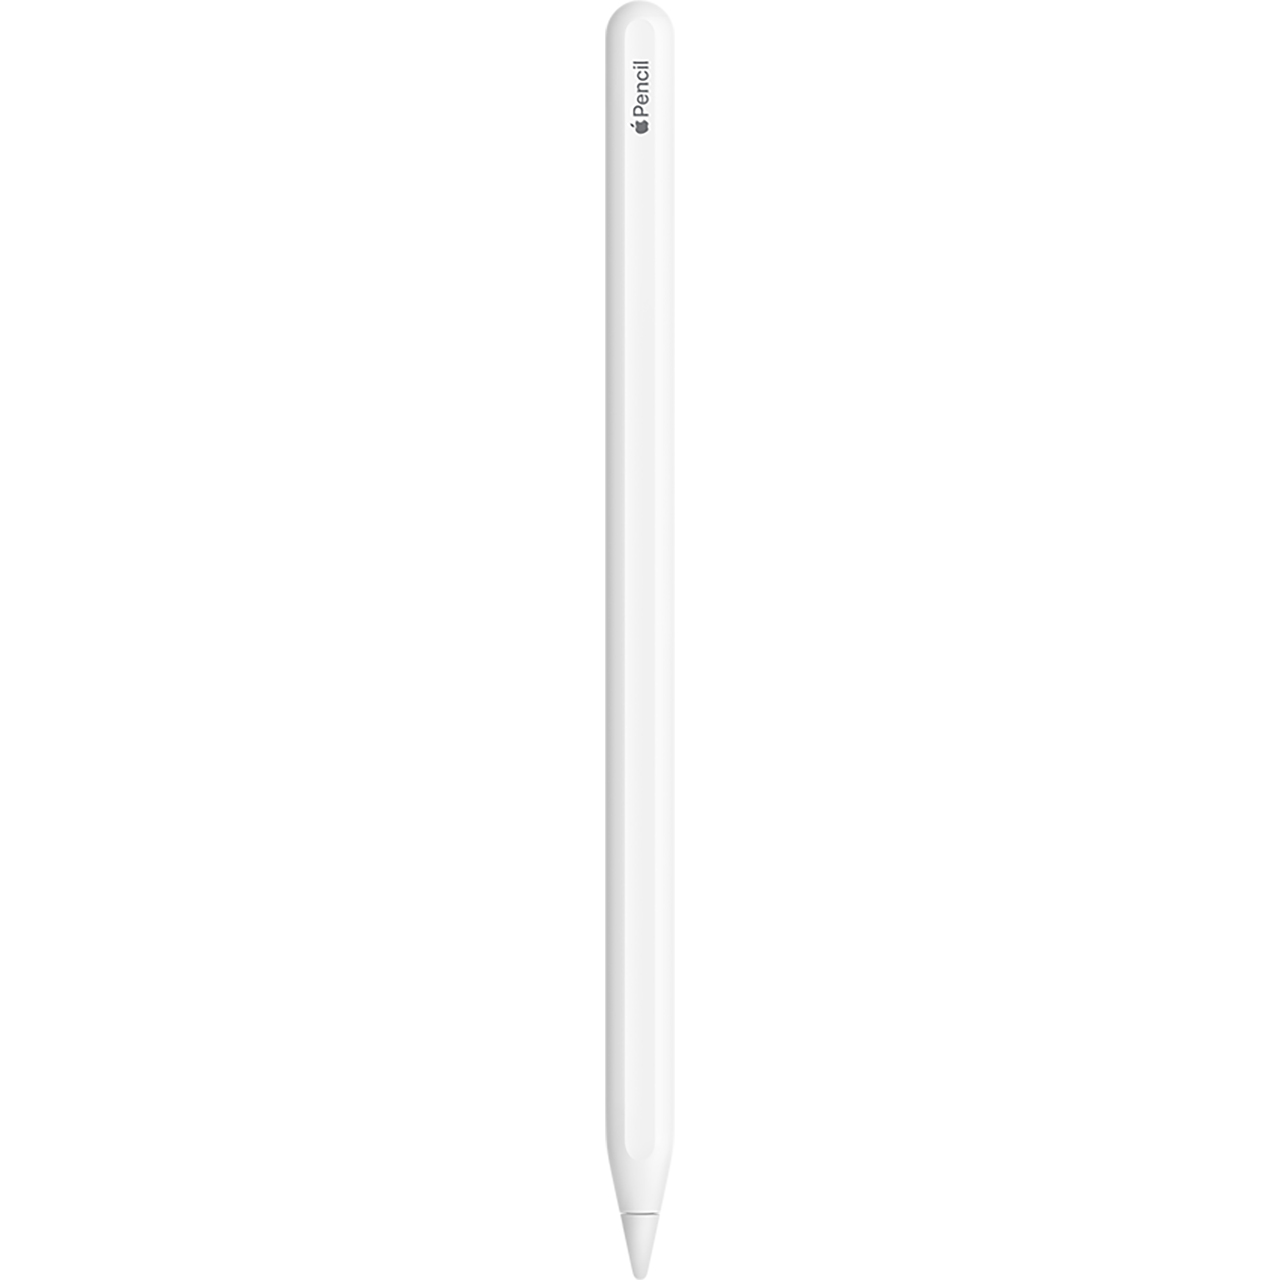 Pencil Apple (2nd generation) For Ipad Pro White MU8F2ZM/A image